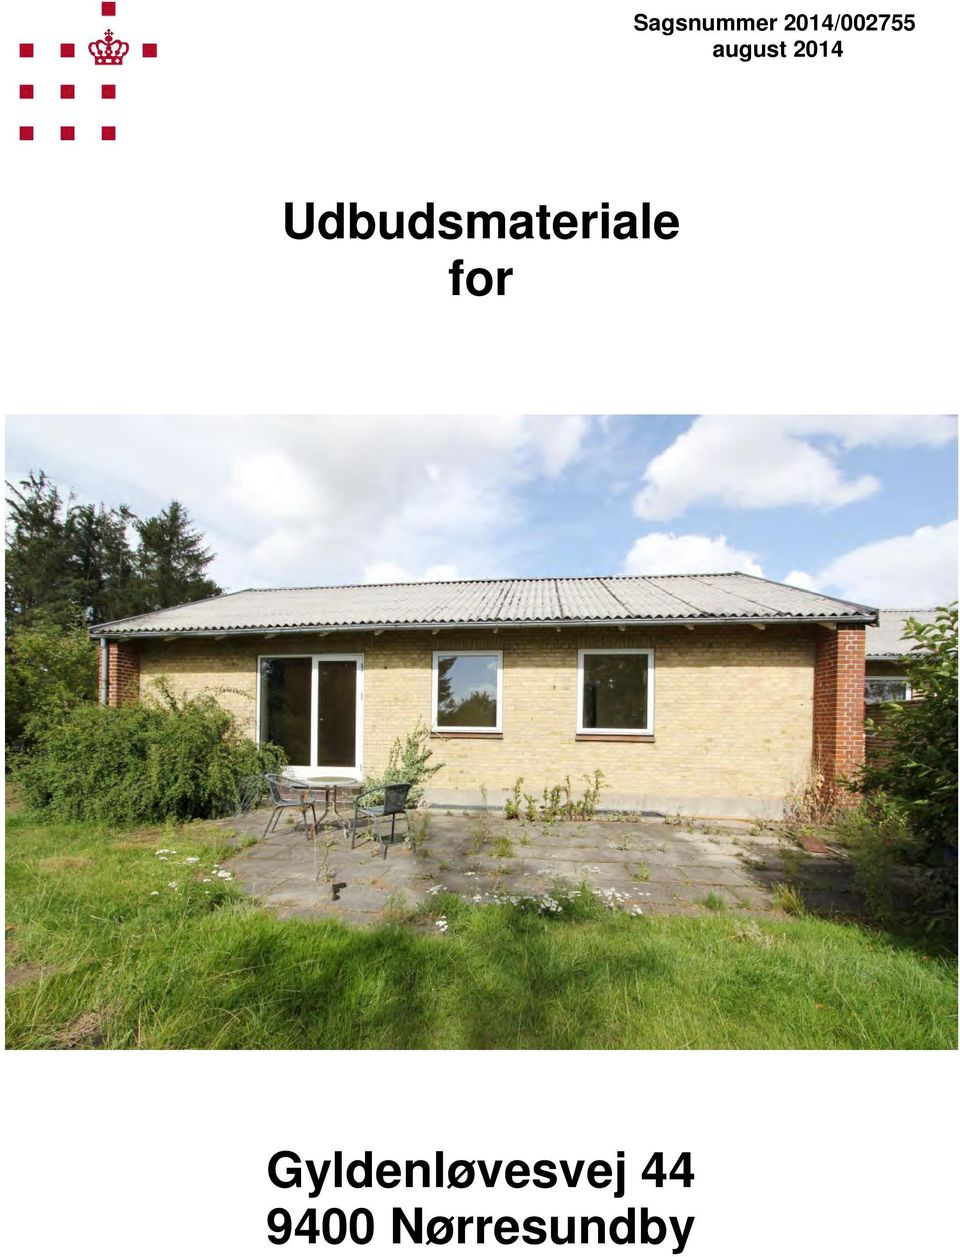 Udbudsmateriale for